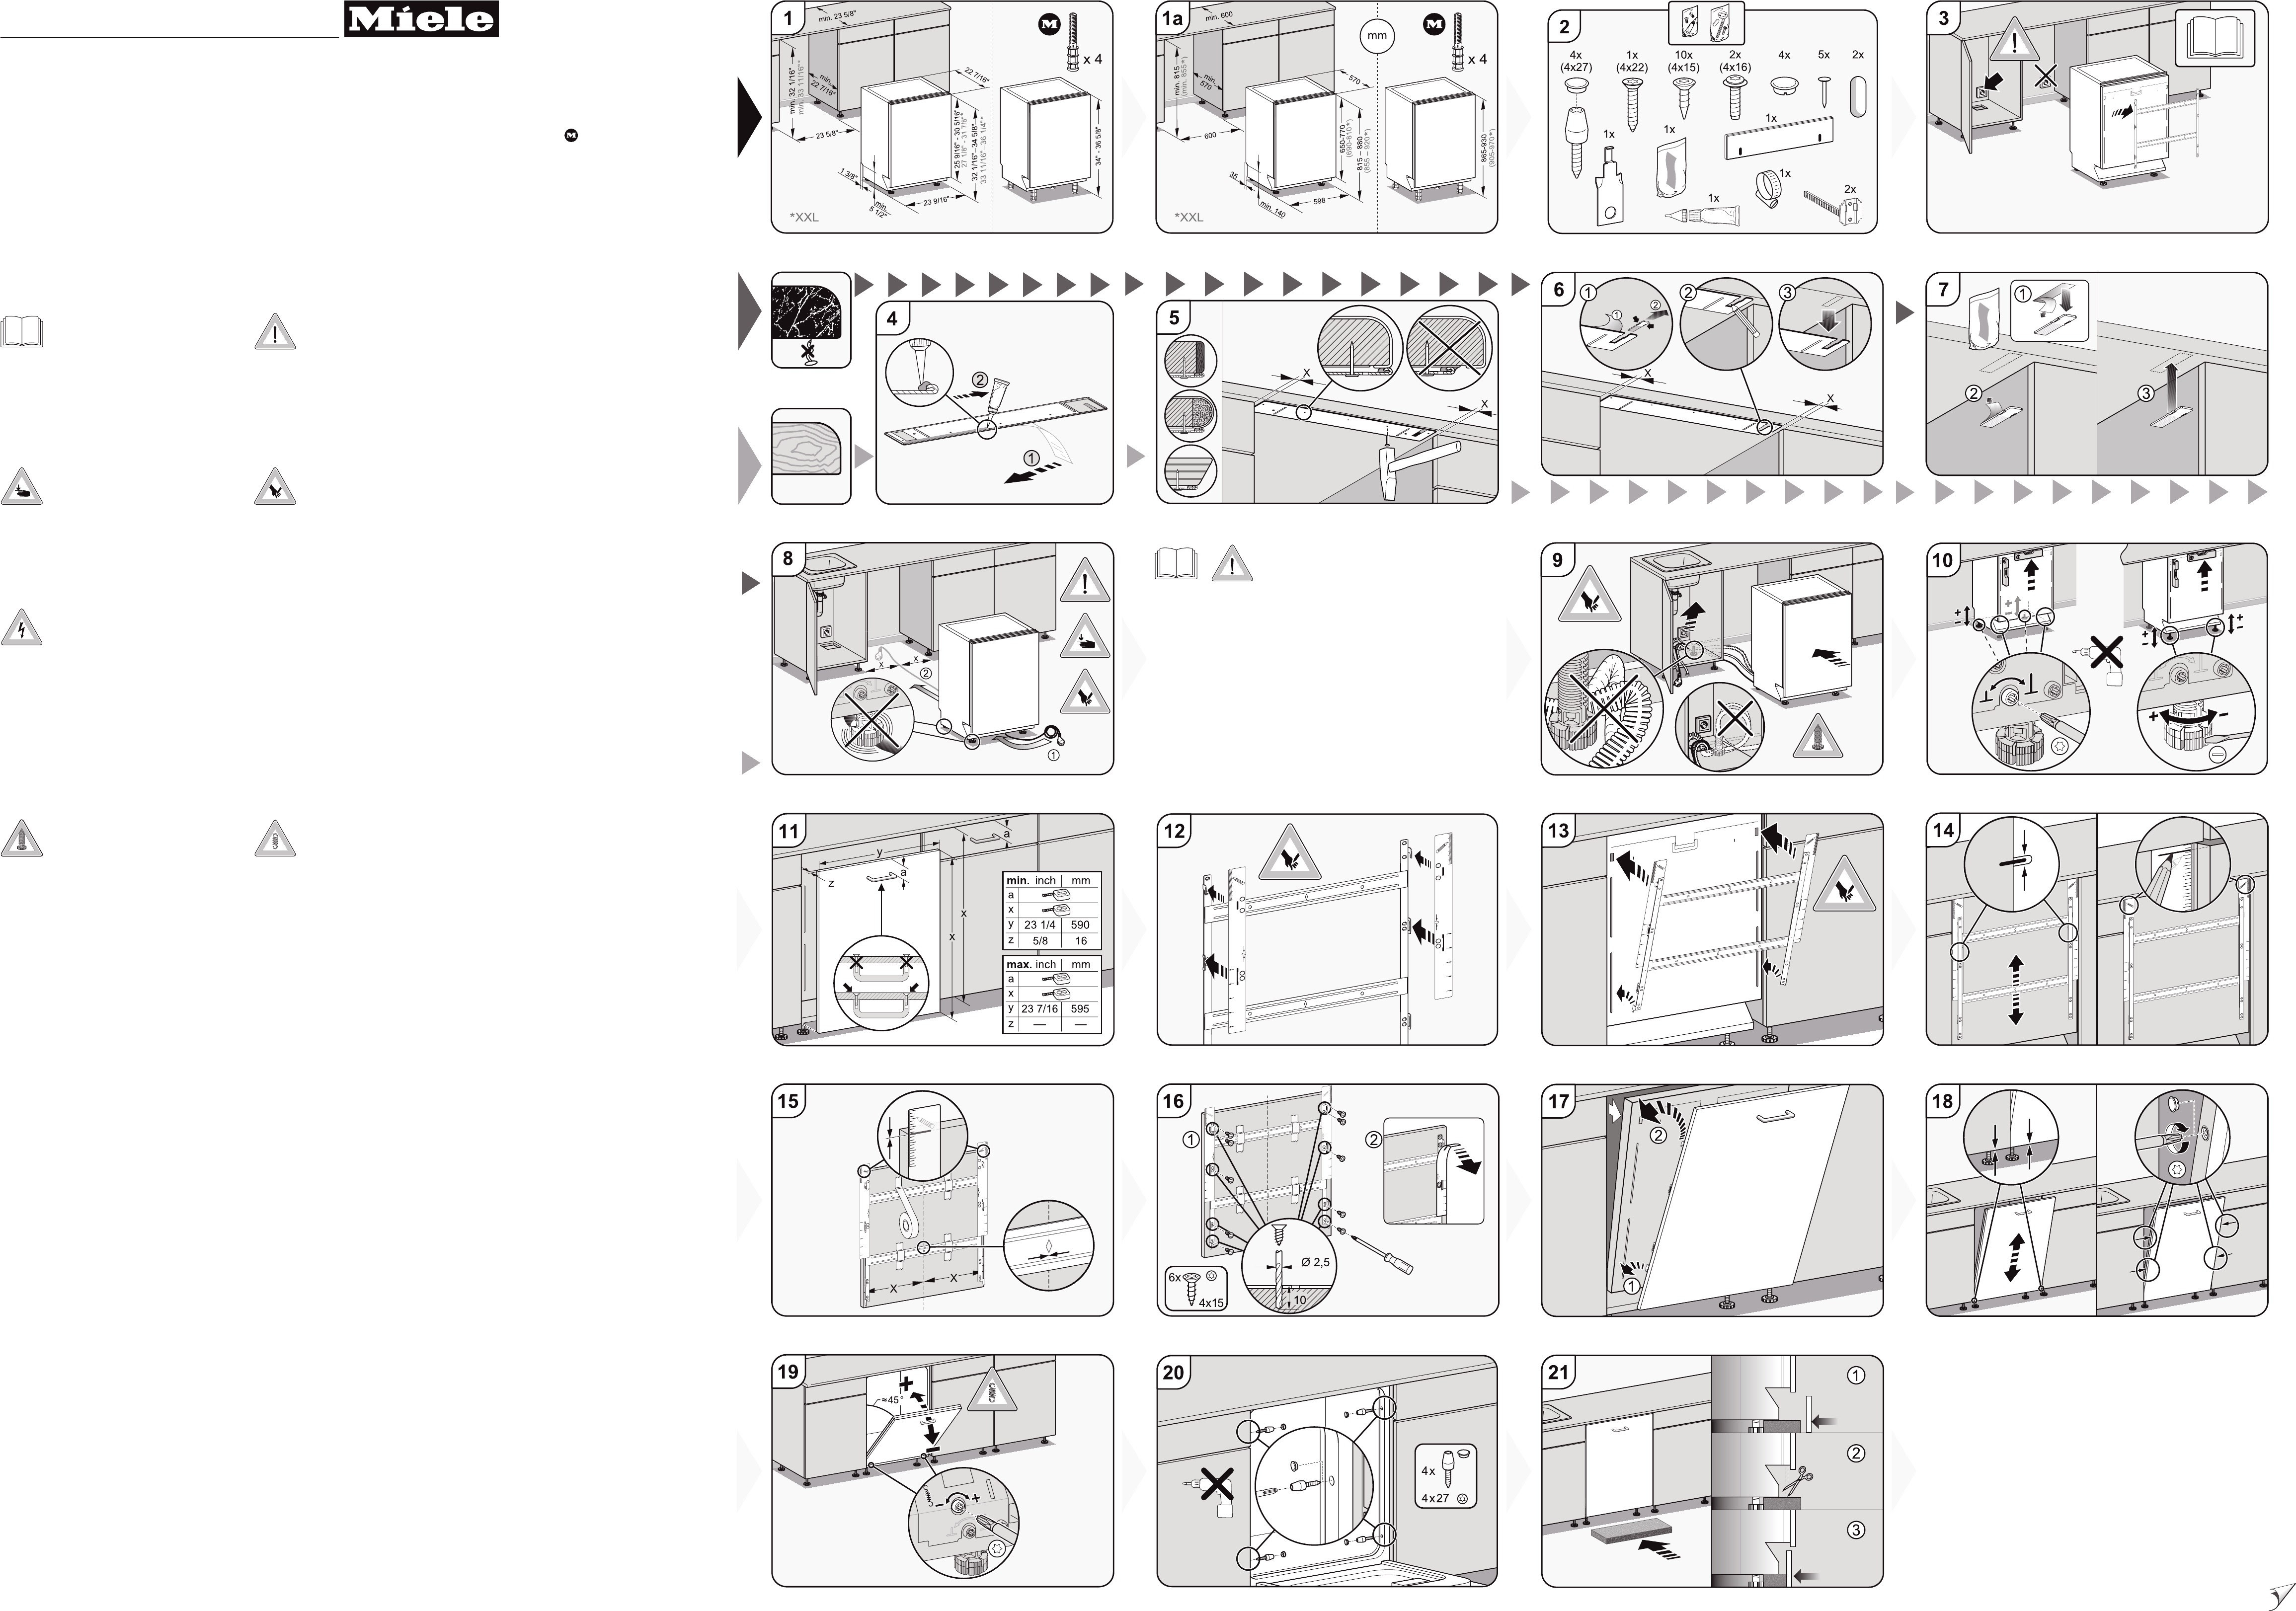 Ps3000 Schumacher Battery Charger Wiring Diagram